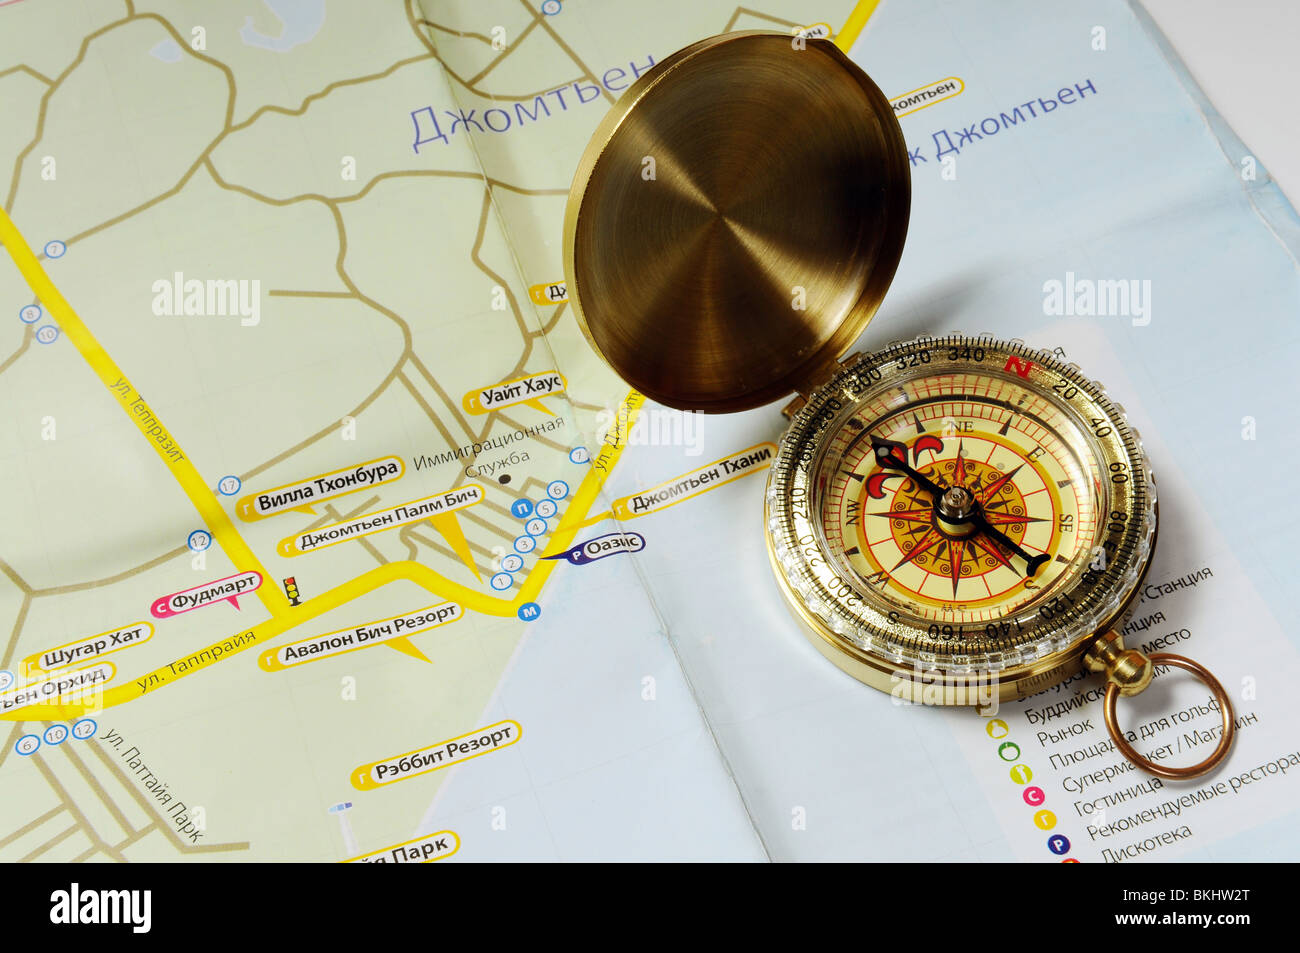 Old brass compass on tourist map of Thailand - Stock Image